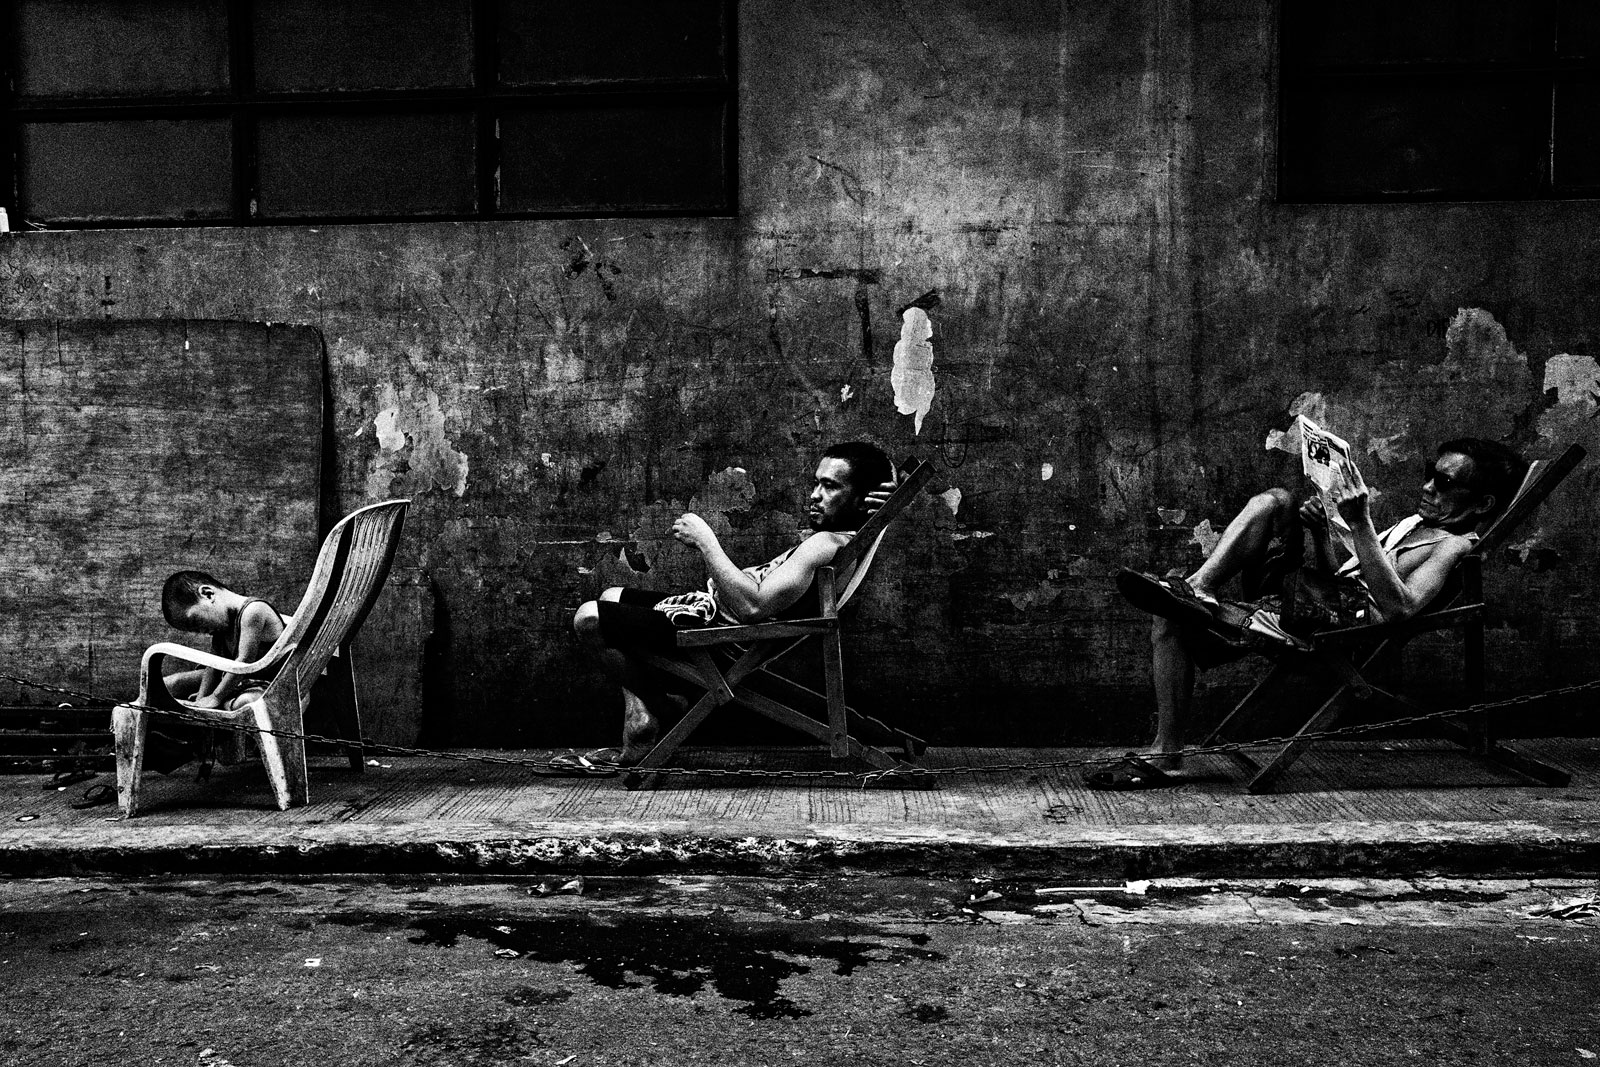 foto: © Oliver SanJuan - Philippines Street Photography Open competition 2018